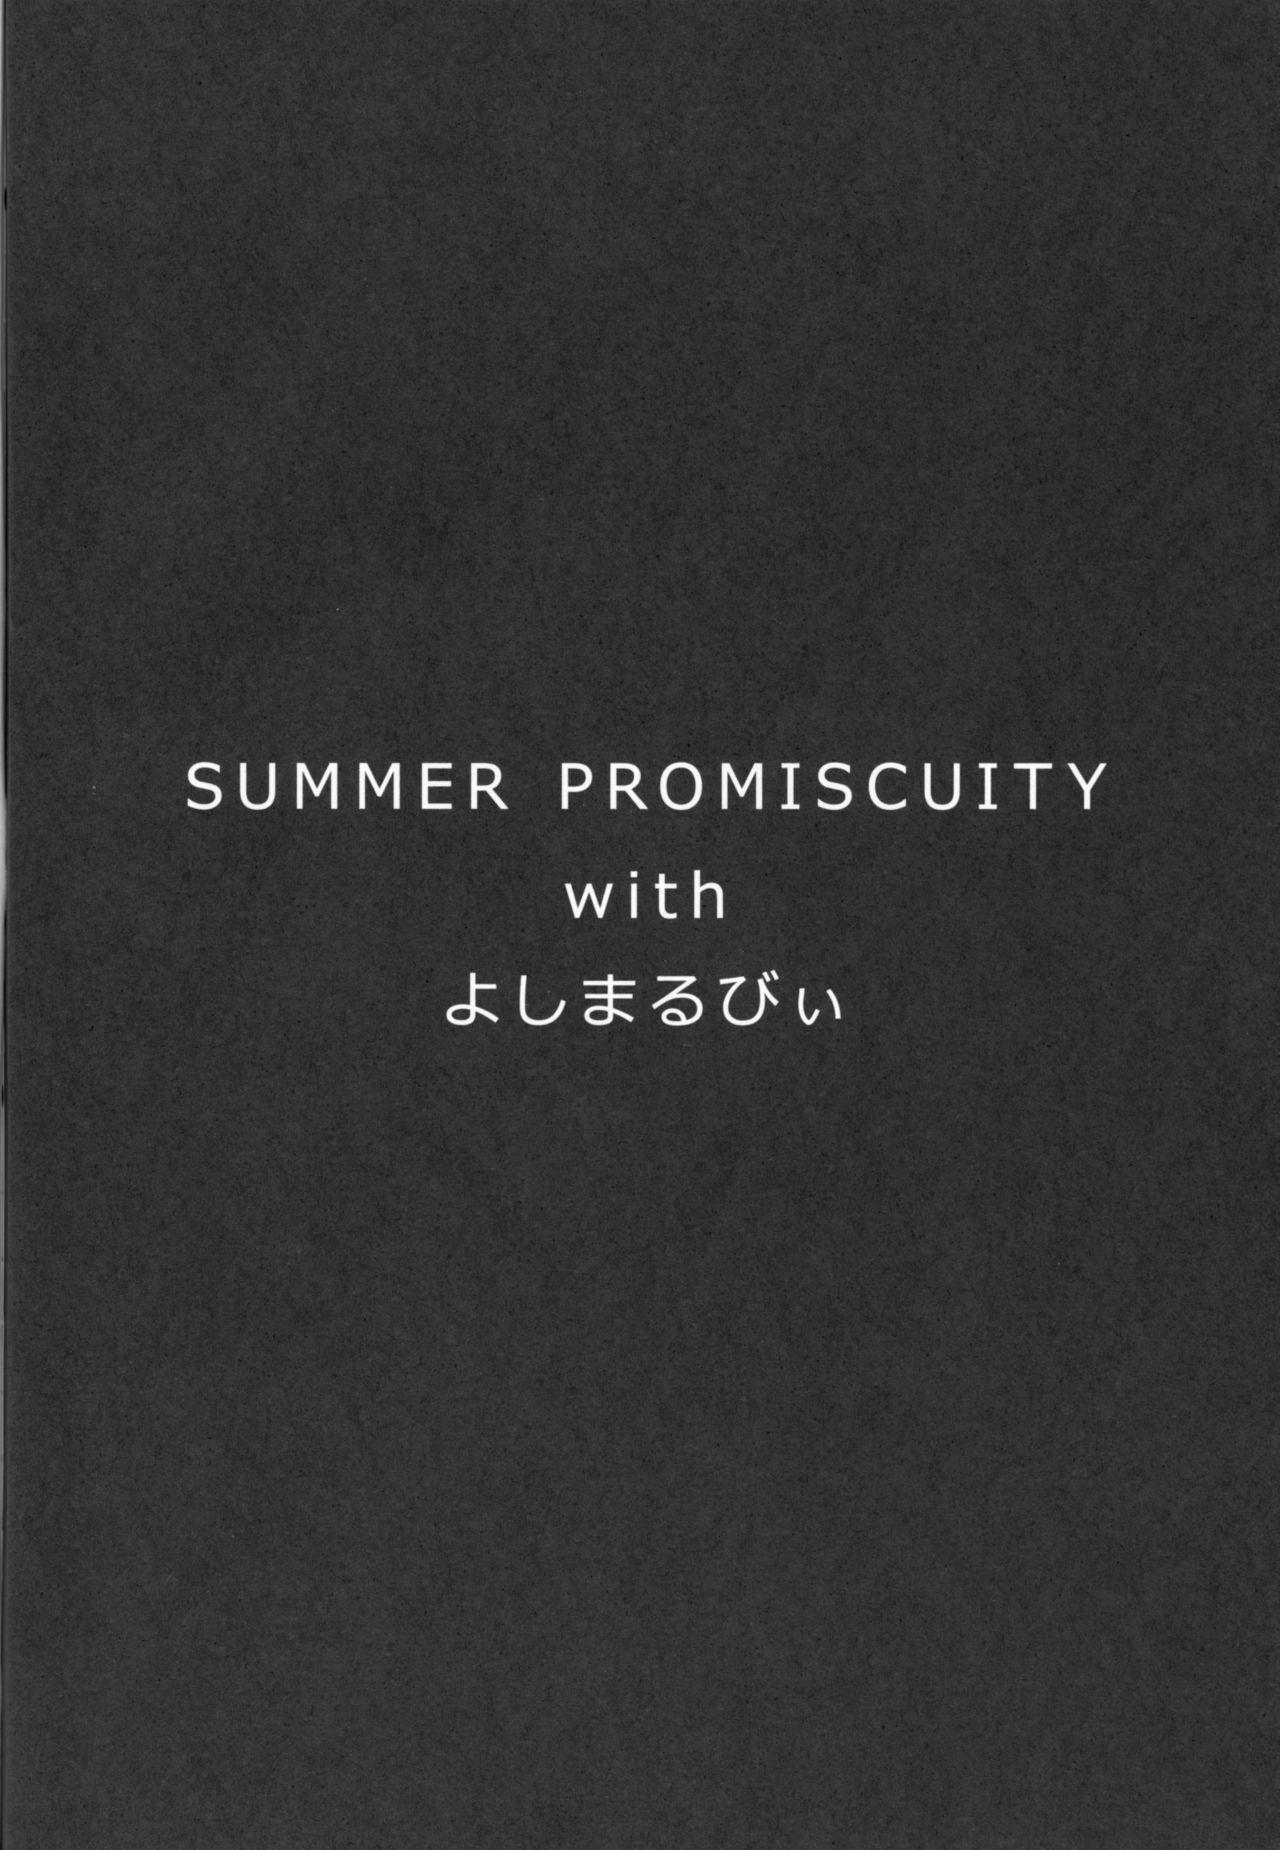 SUMMER PROMISCUITY with Yoshimaruby 2